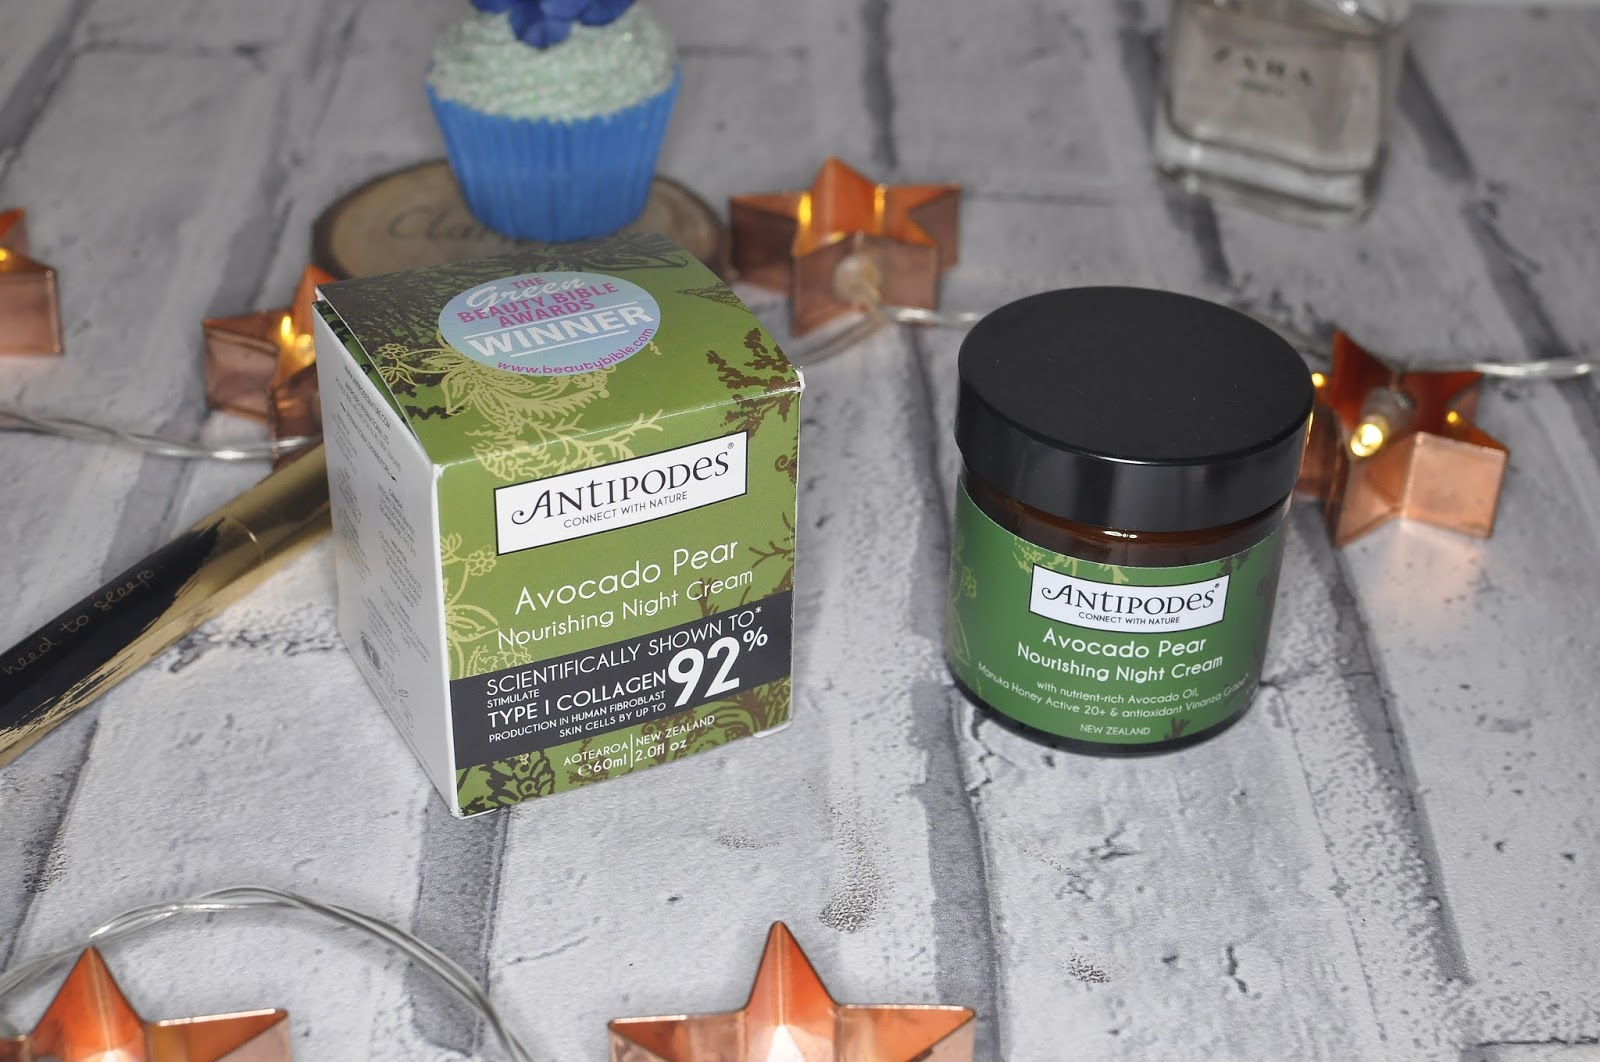 Antipodes Avacado Pear Nourishing Night Cream